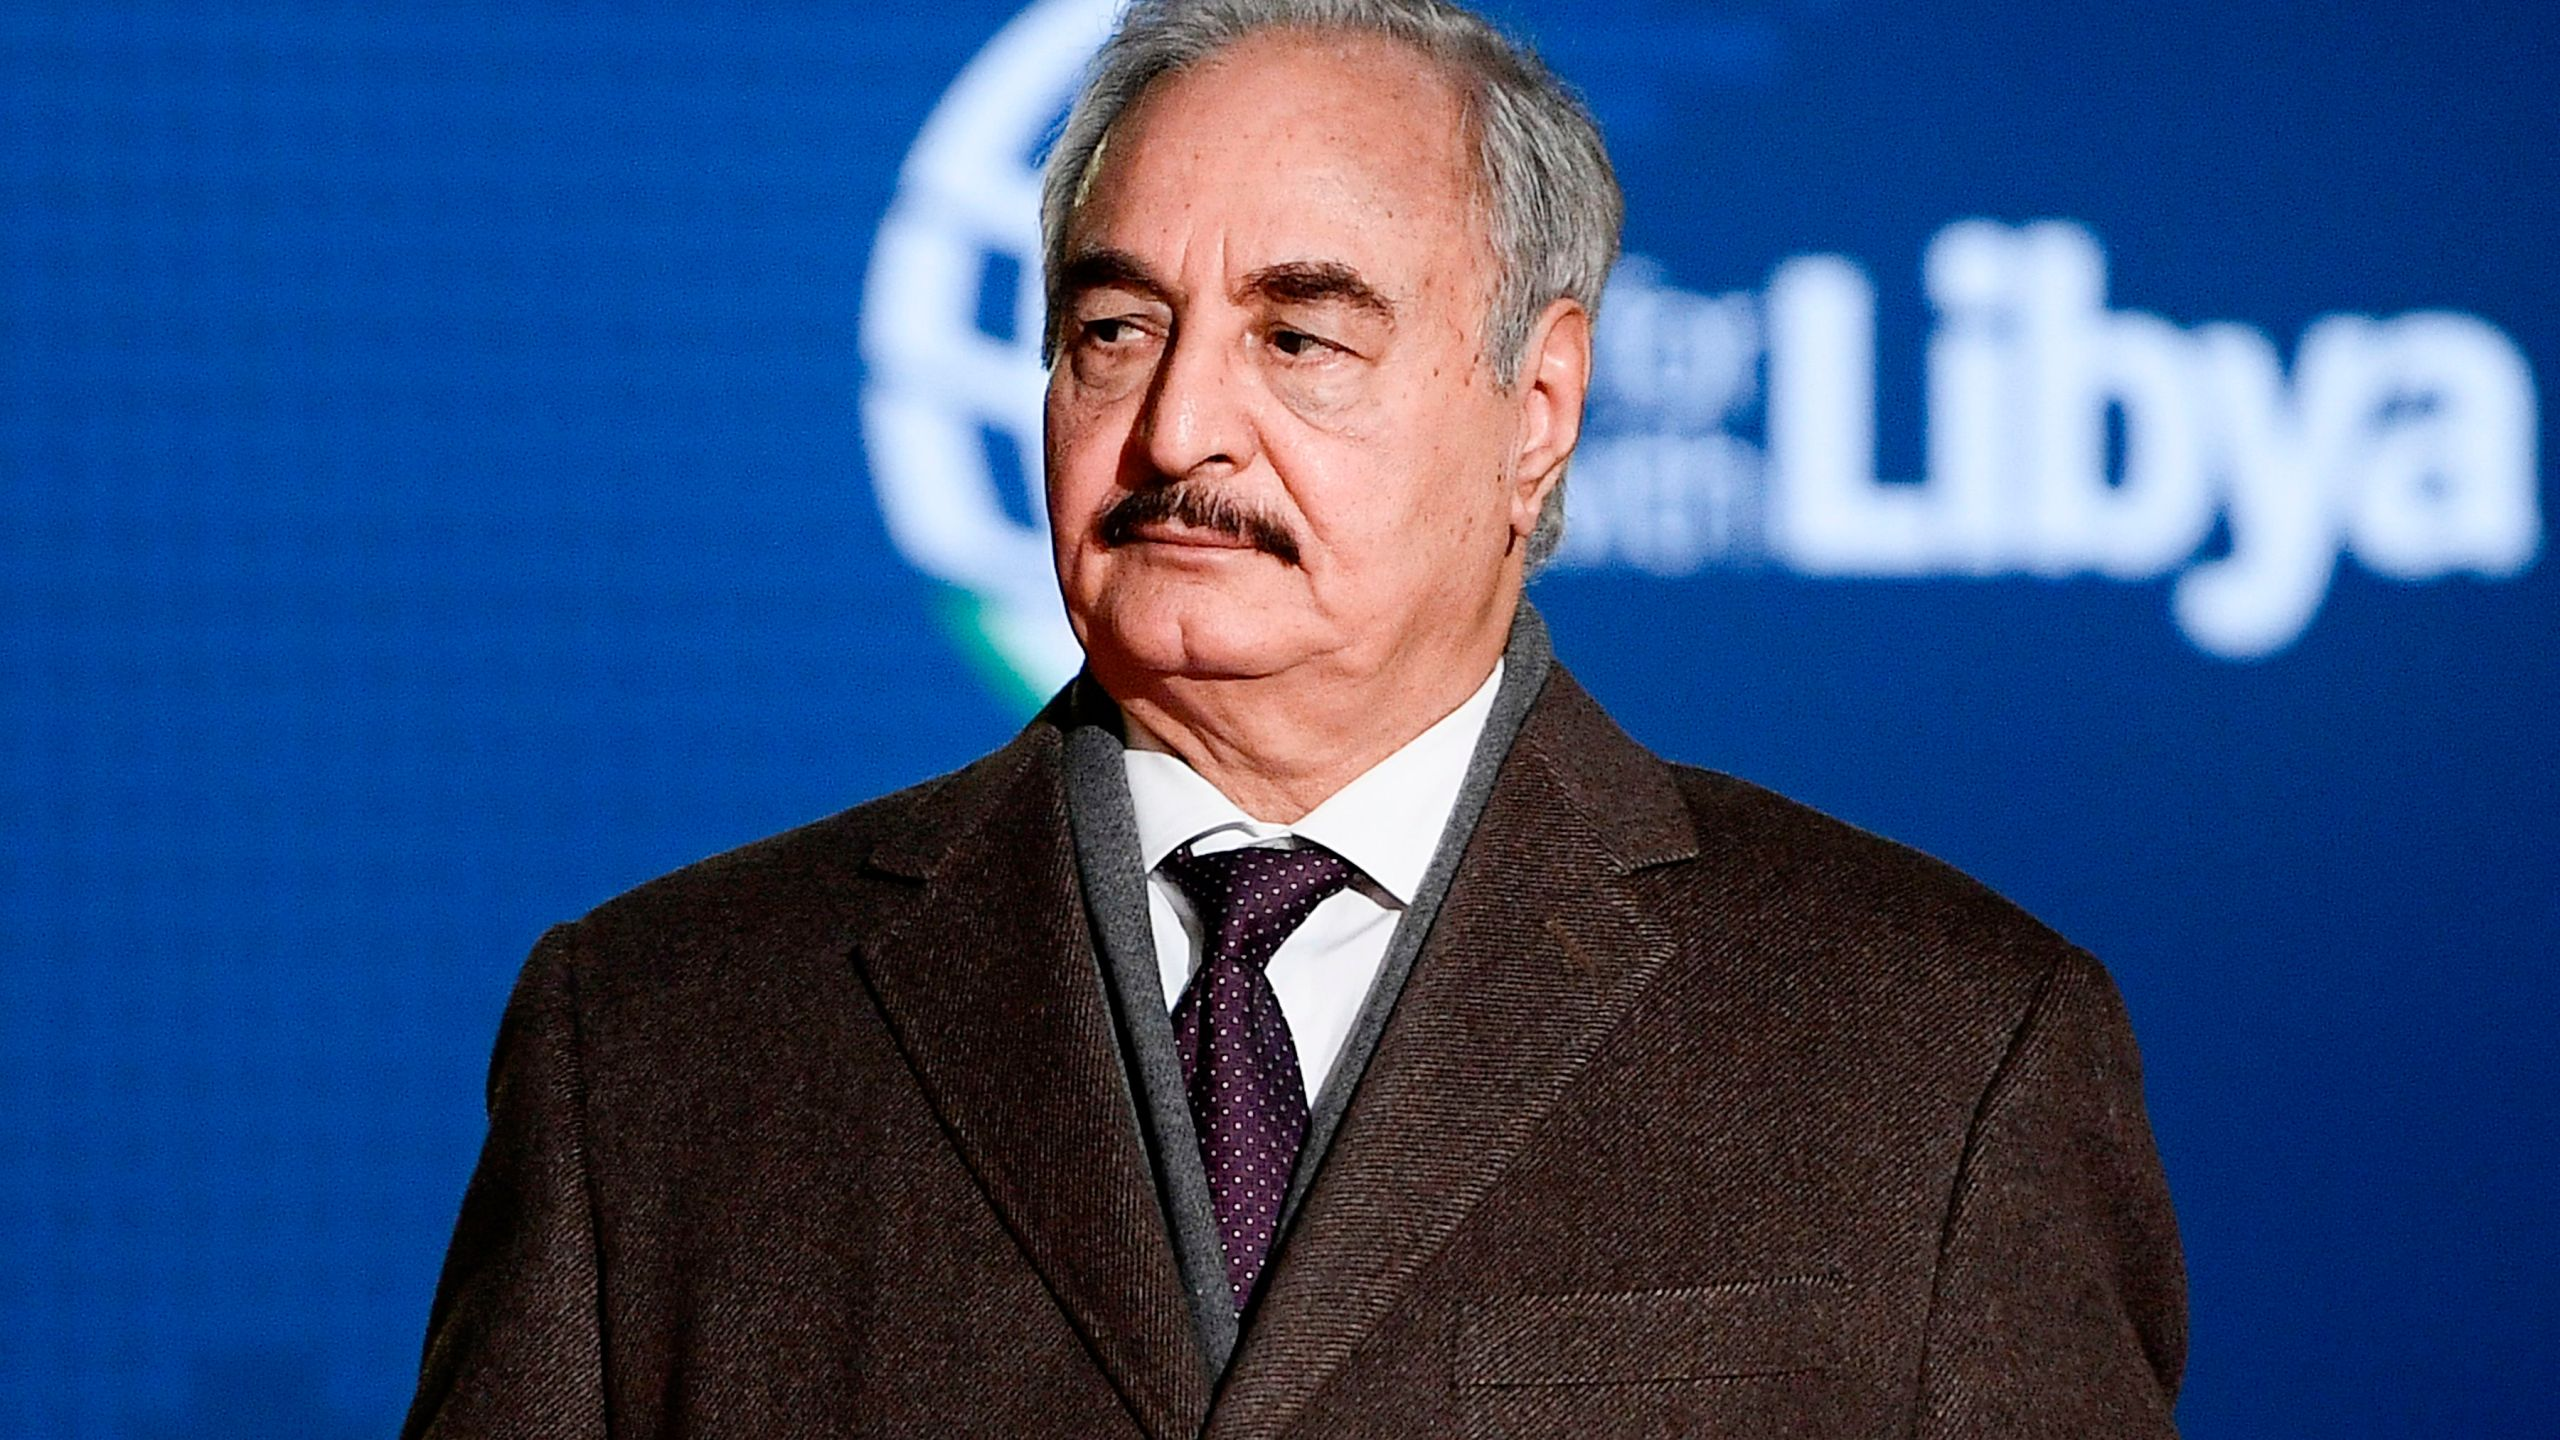 Self-proclaimed Libyan National Army (LNA) Chief of Staff, Khalifa Haftar, arrives for a conference on Libya on Nov. 12, 2018, at Villa Igiea in Palermo.(Credit: FILIPPO MONTEFORTE/AFP/Getty Images)